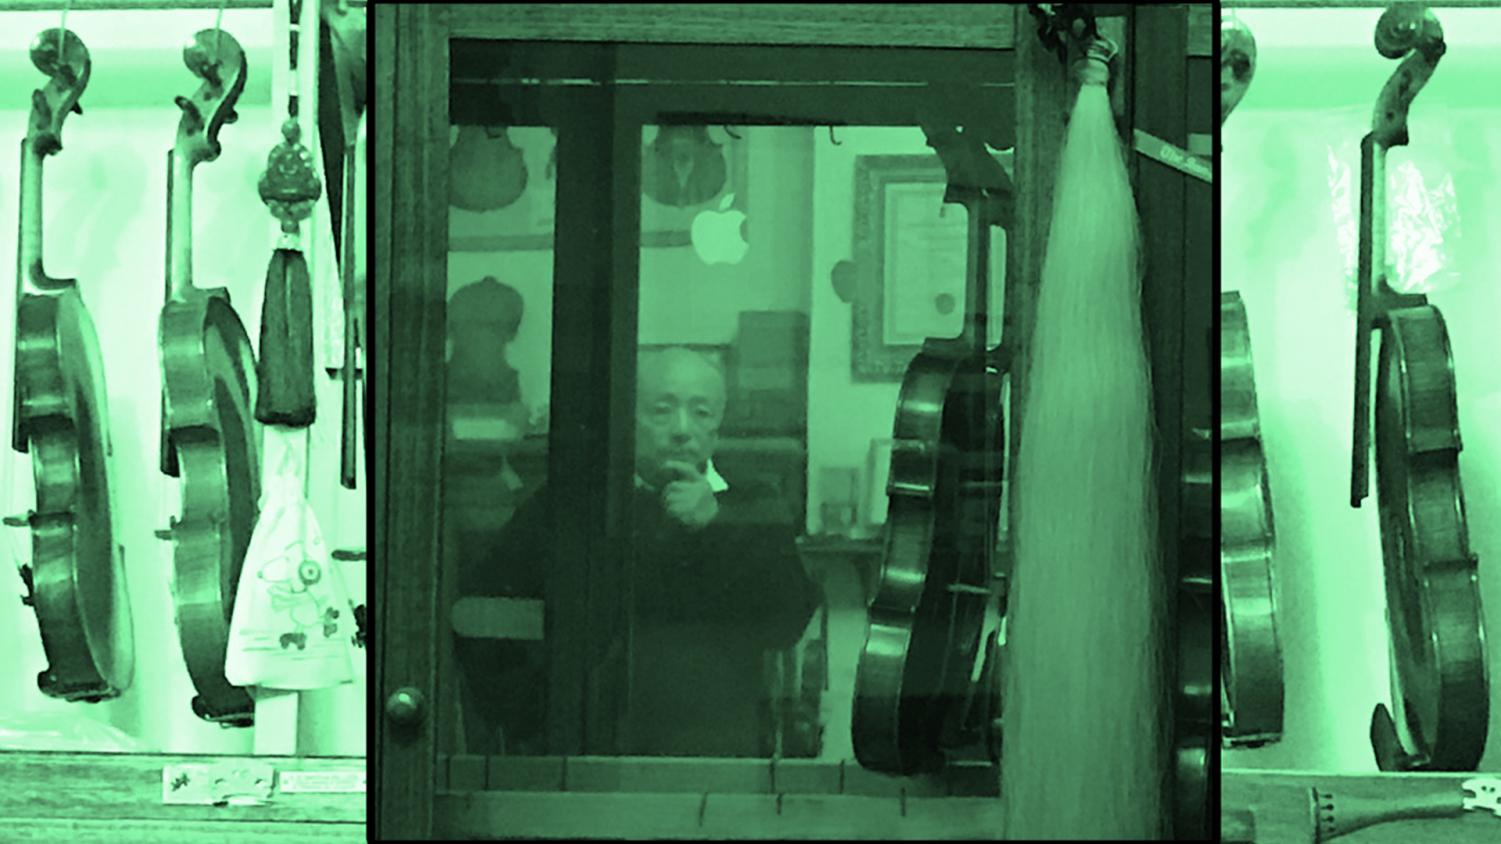 Zaixing Sheng, master luthier, has lived his extraordinary life in two parts.